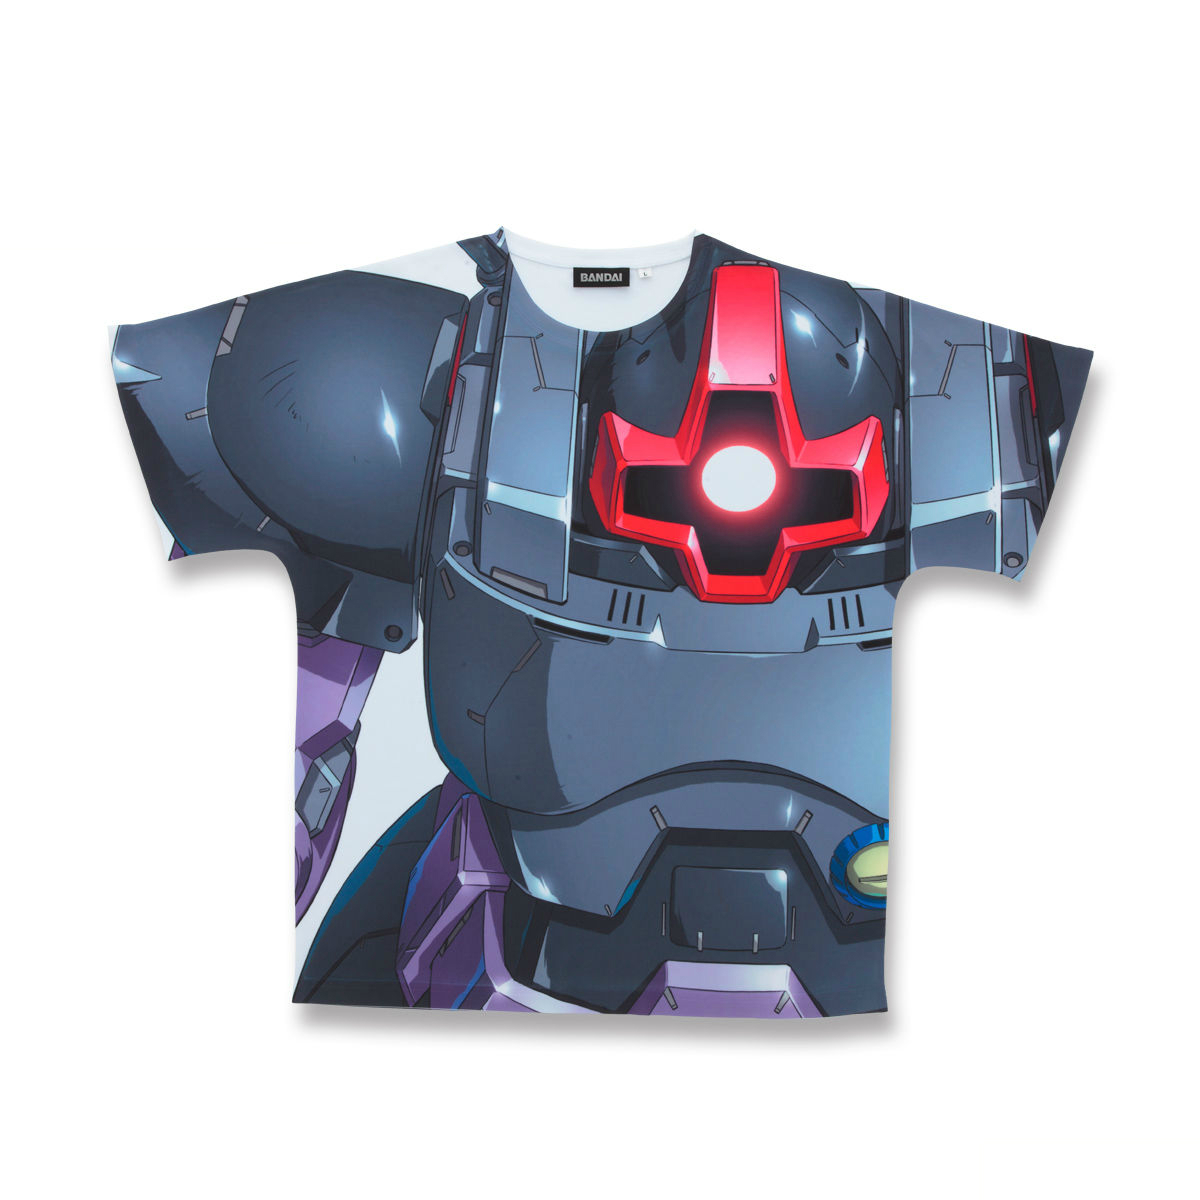 Mobile Suit Gundam MS-09 All-Over Print T-shirt [May 2021 Delivery]